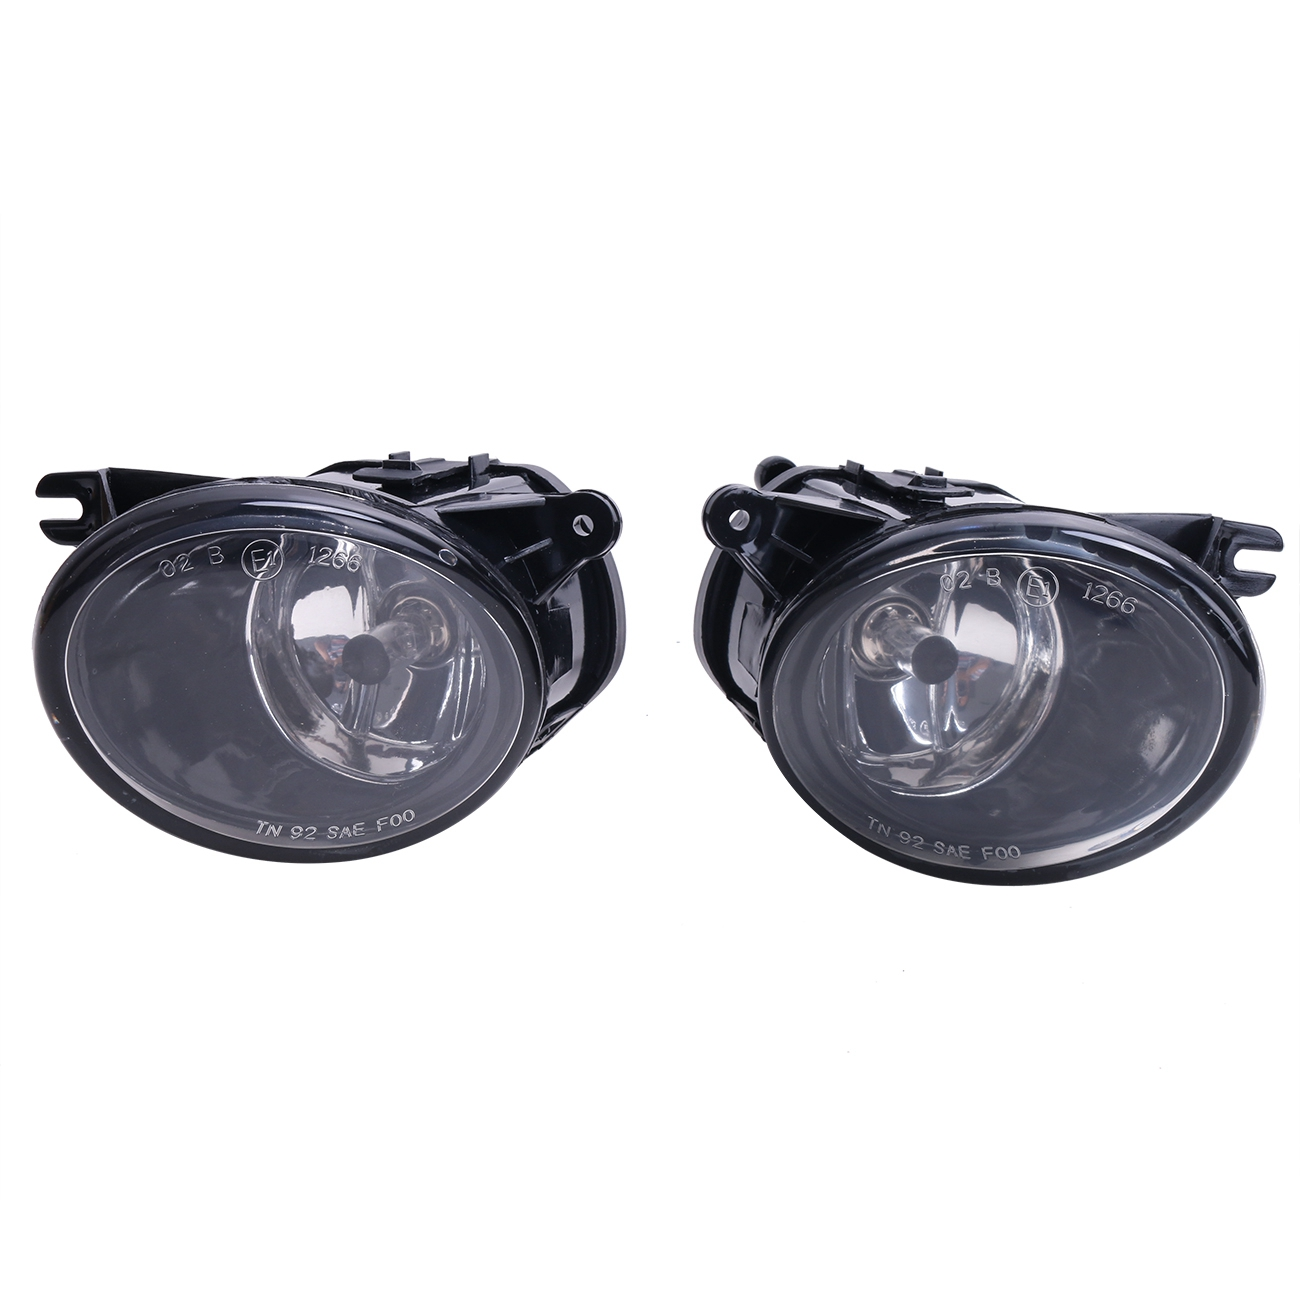 1 Pair Front Driving Lamps Fog Lights For Audi A6 C5 S6 Quattro 2002-2005 //<br>